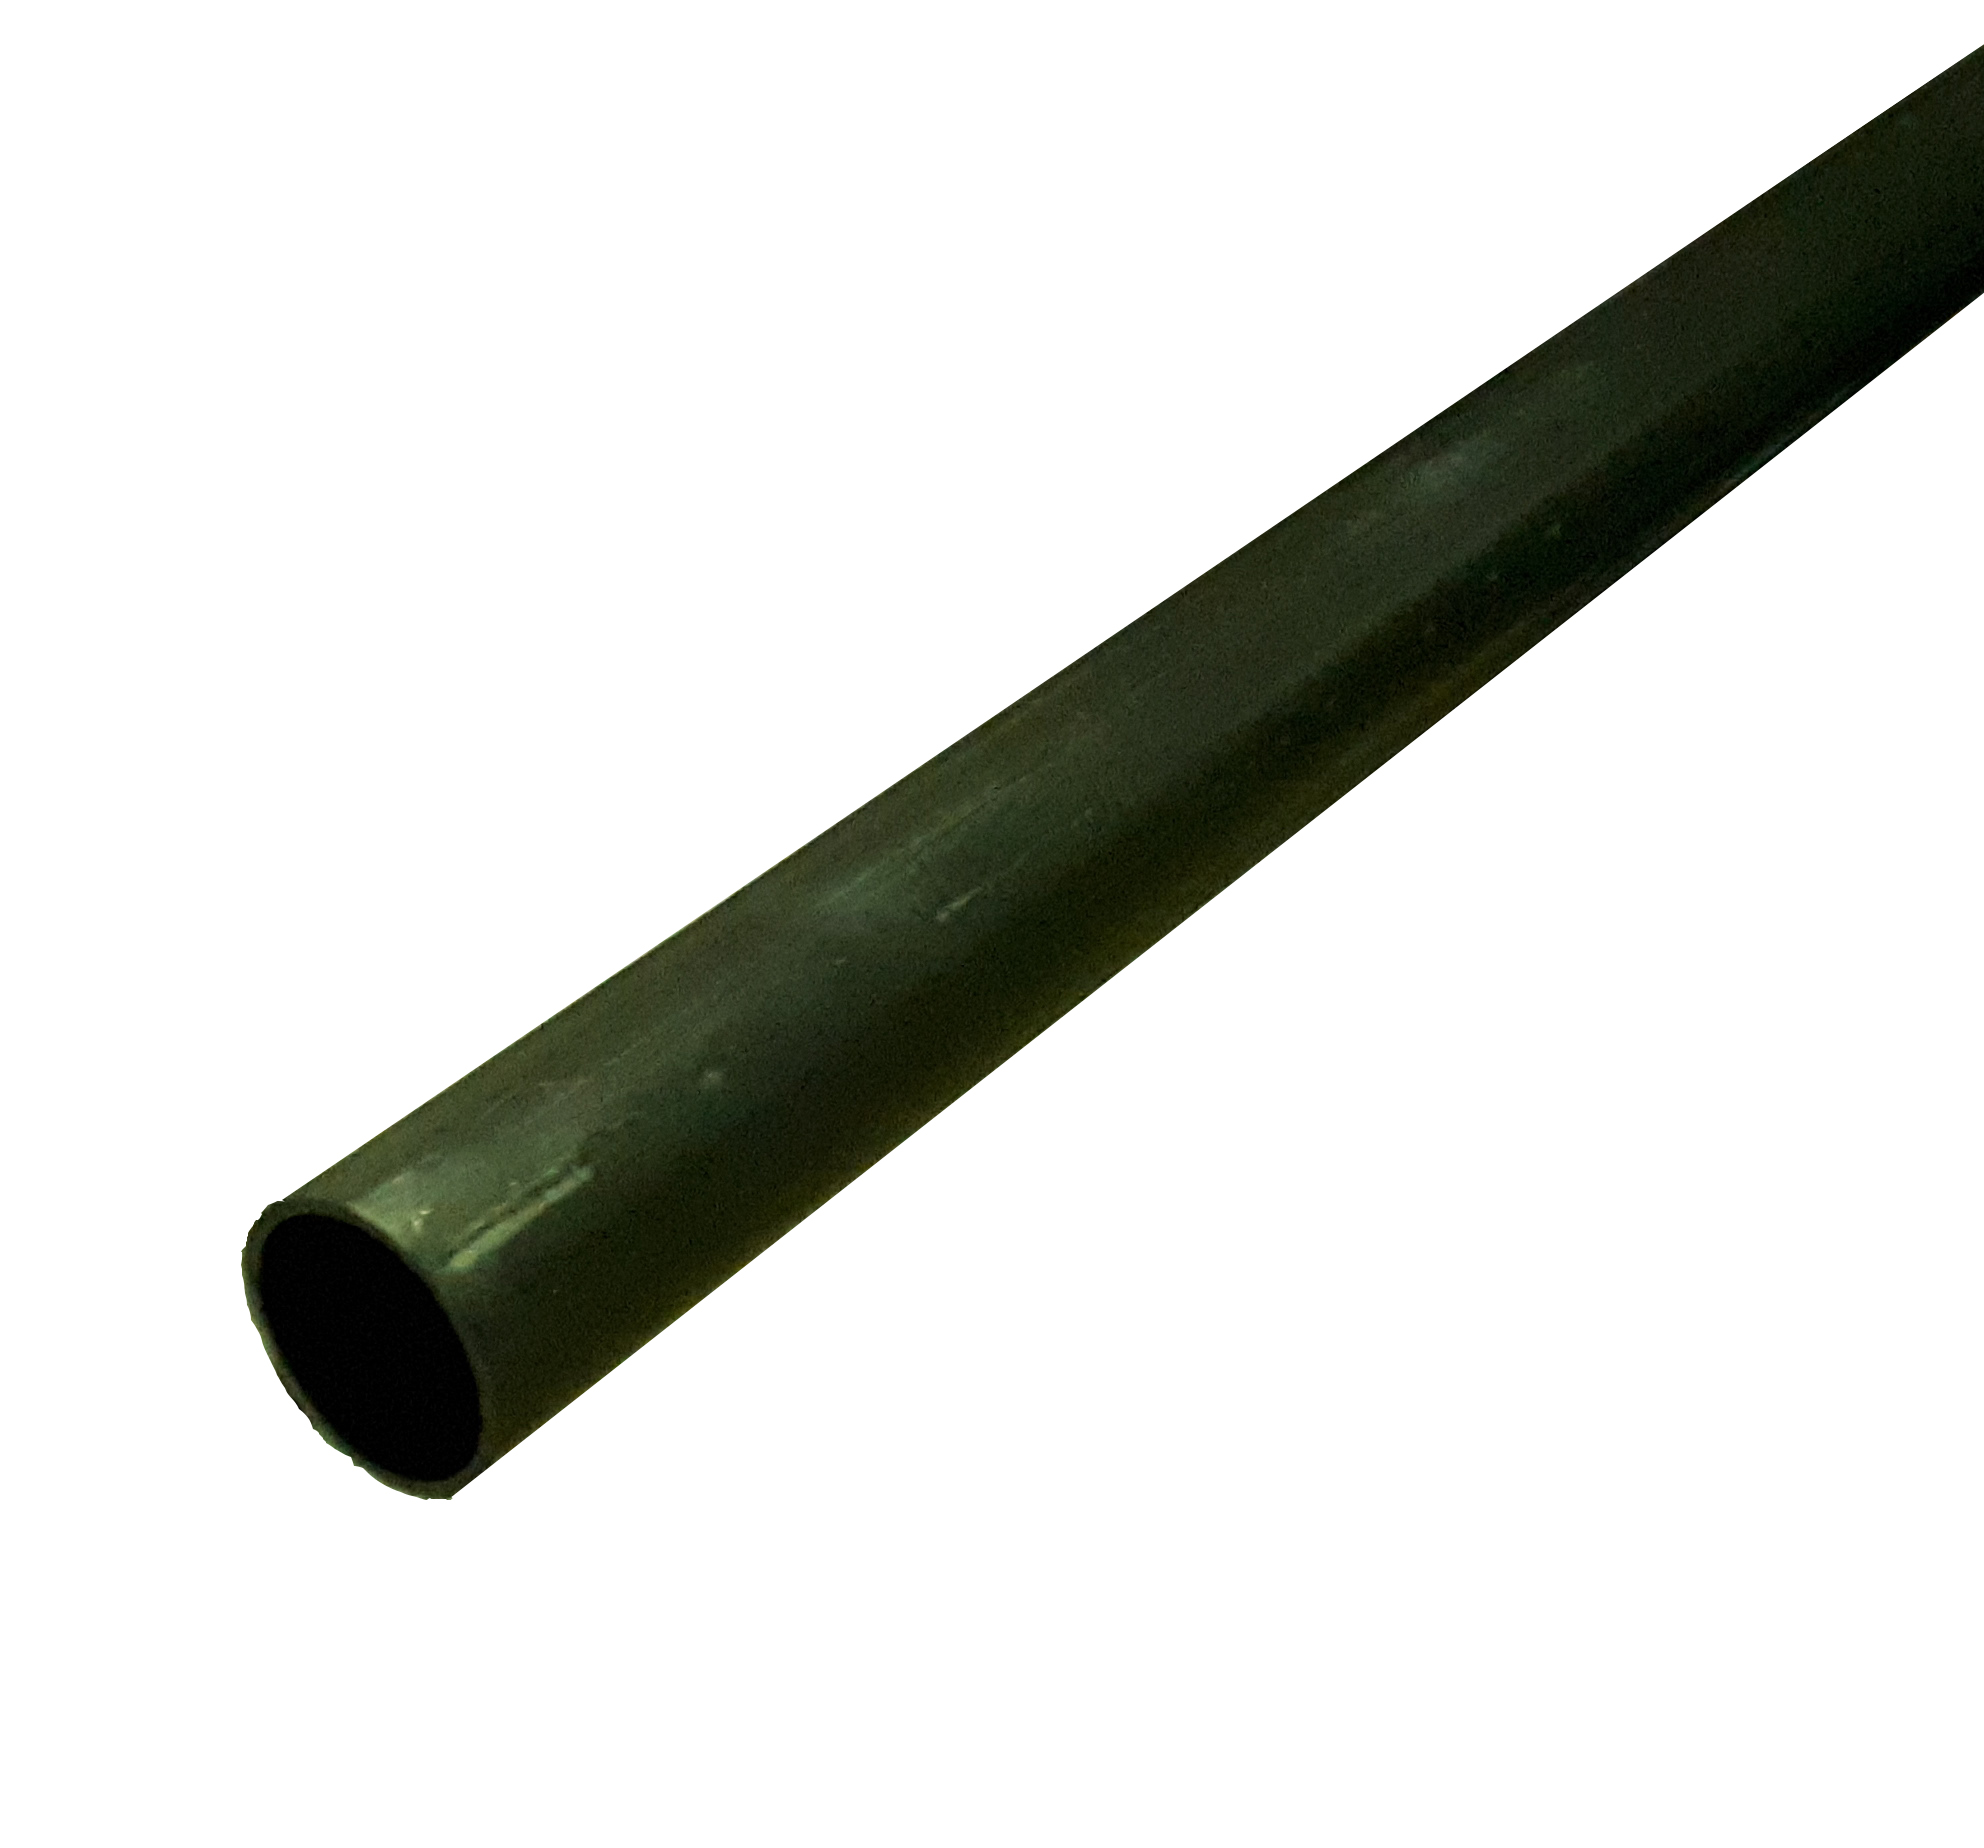 FLOPLAST WS02BL 40MM ABS SOLVENT WELD WASTE PIPE - BLACK